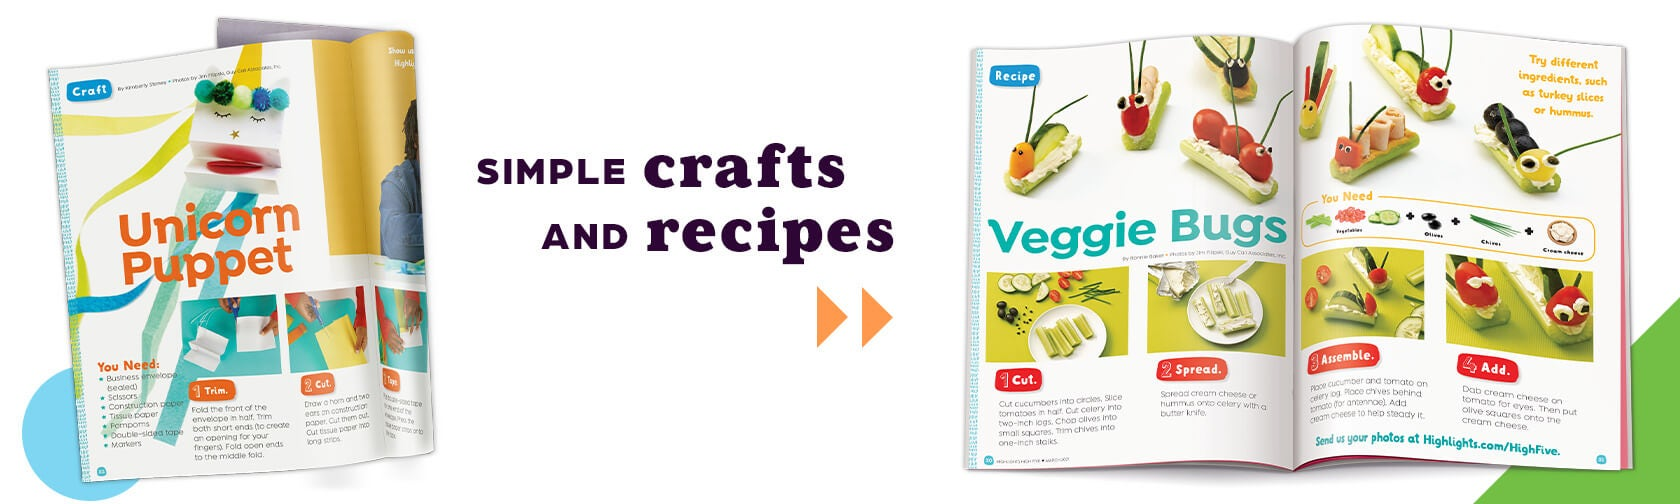 Simple crafts and recipes